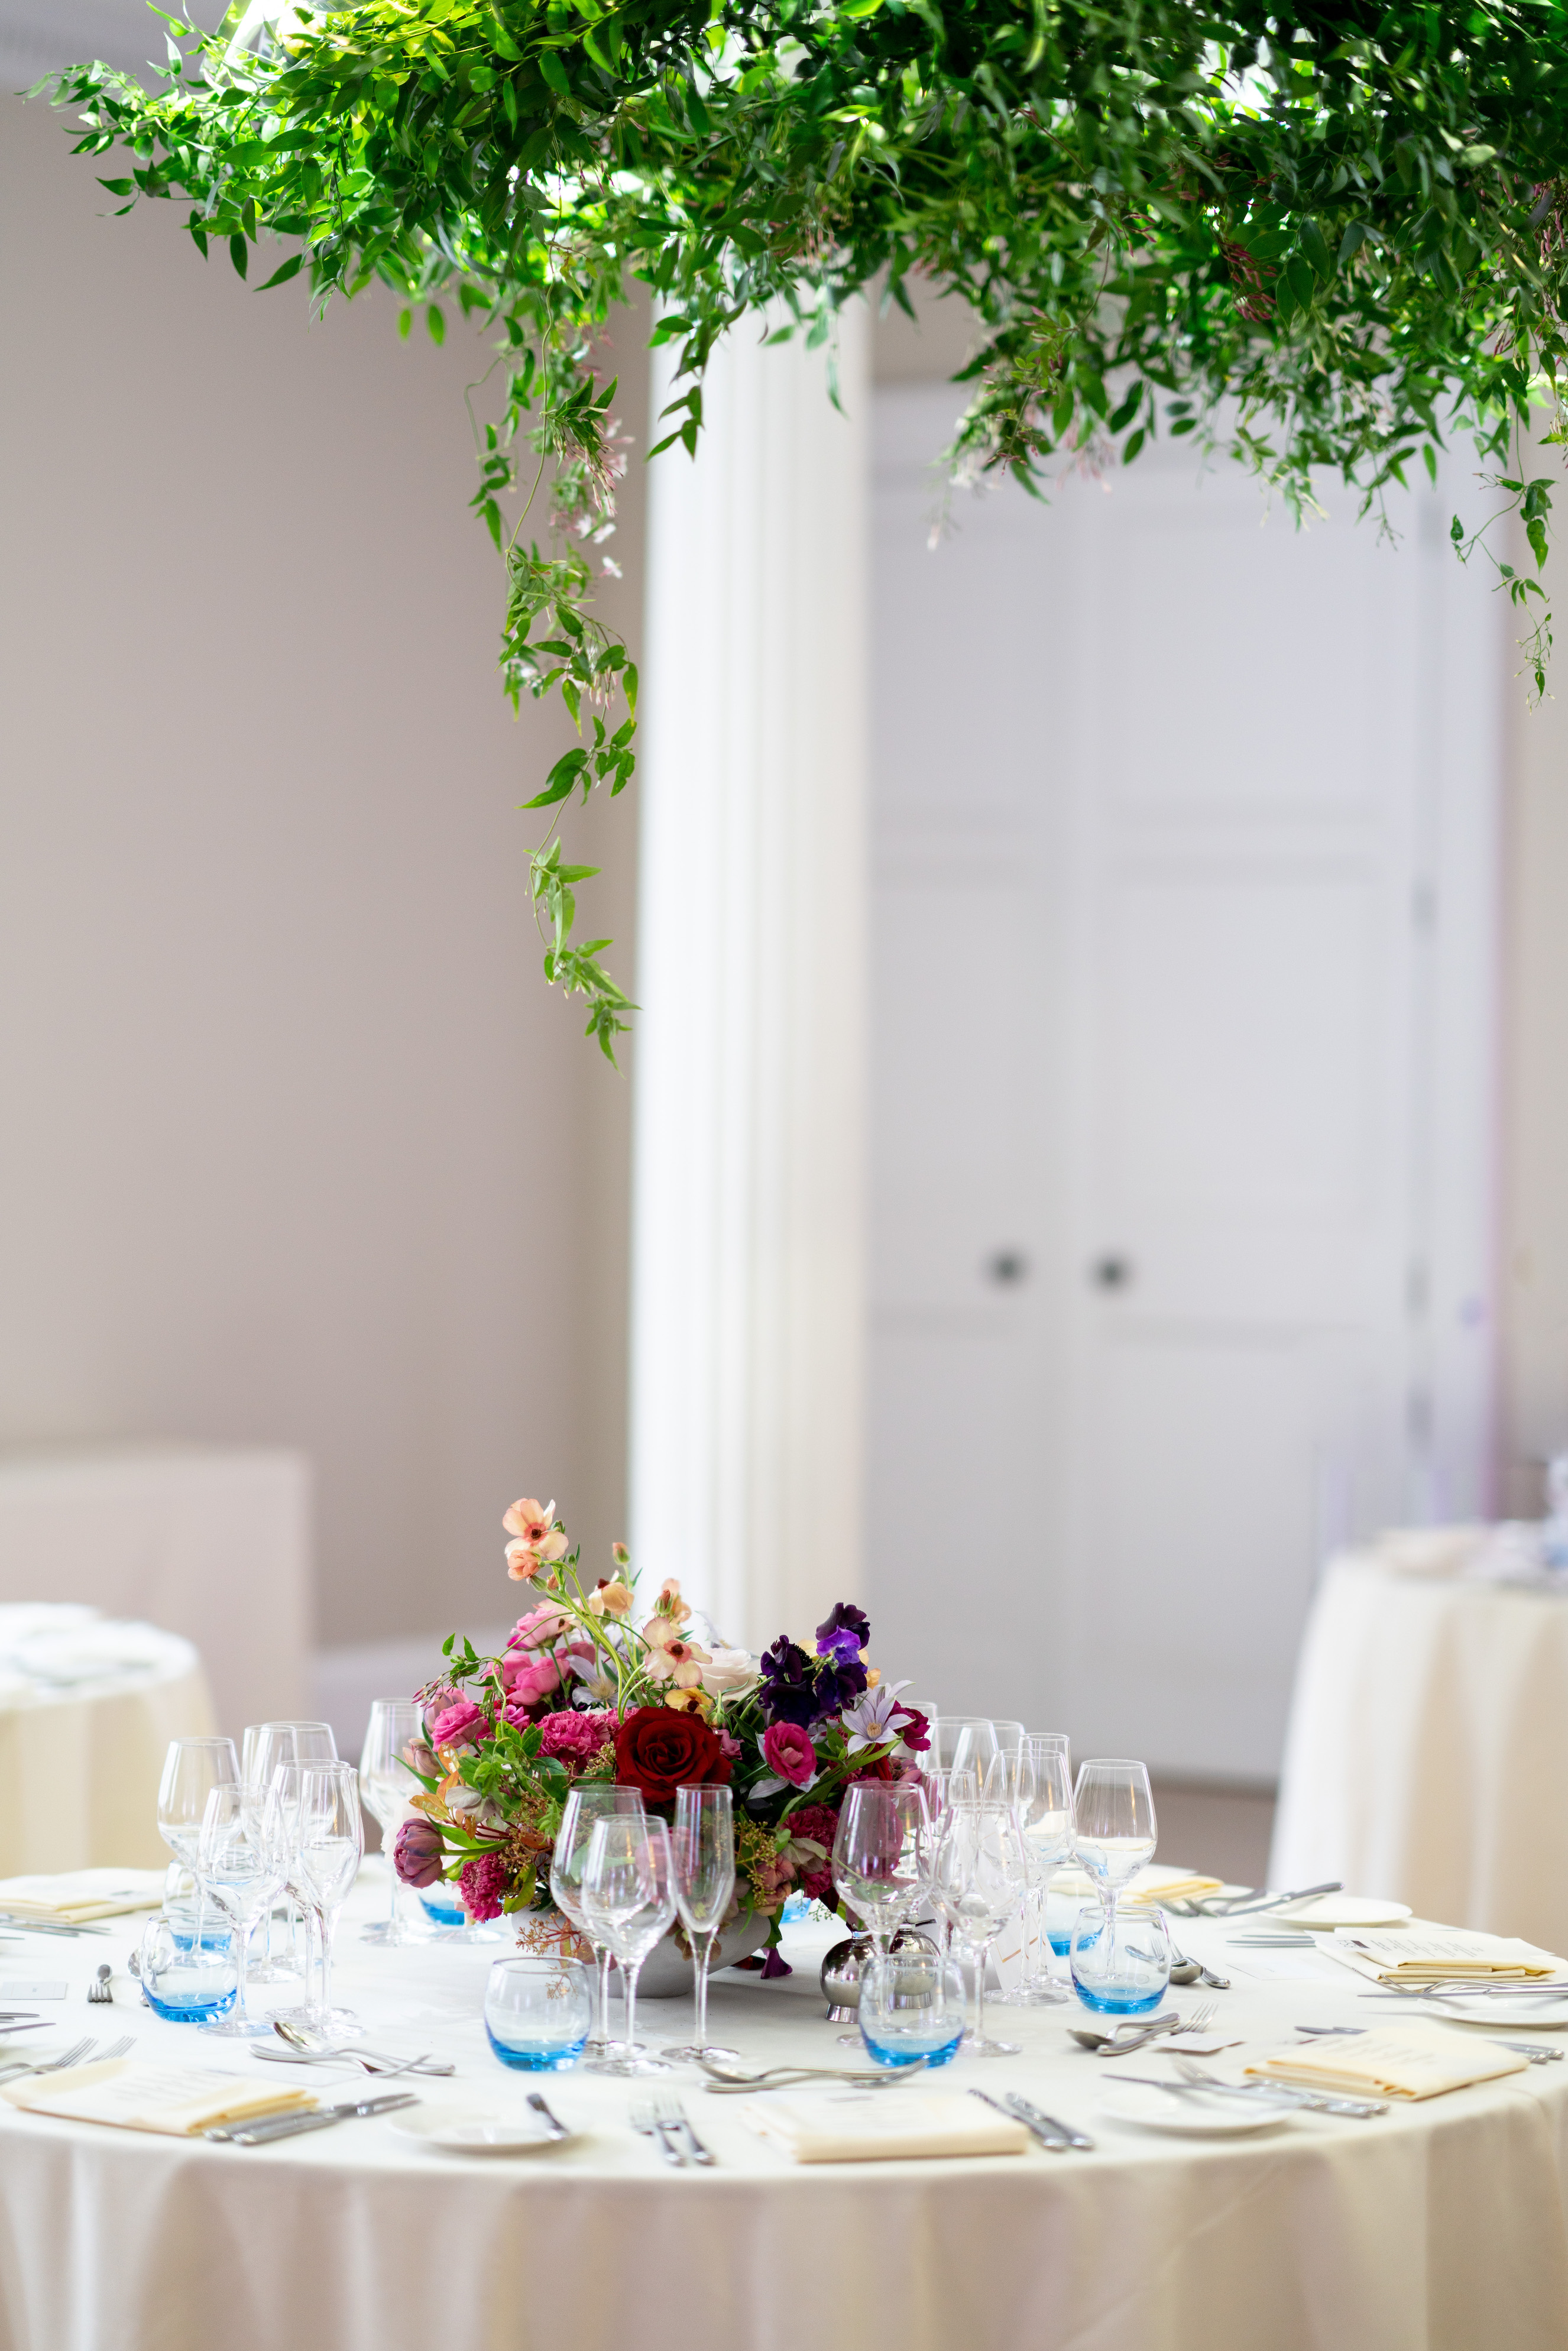 Floral Chandelier, floral installation, with trailing jasmine and a fragrant flower centrepiece